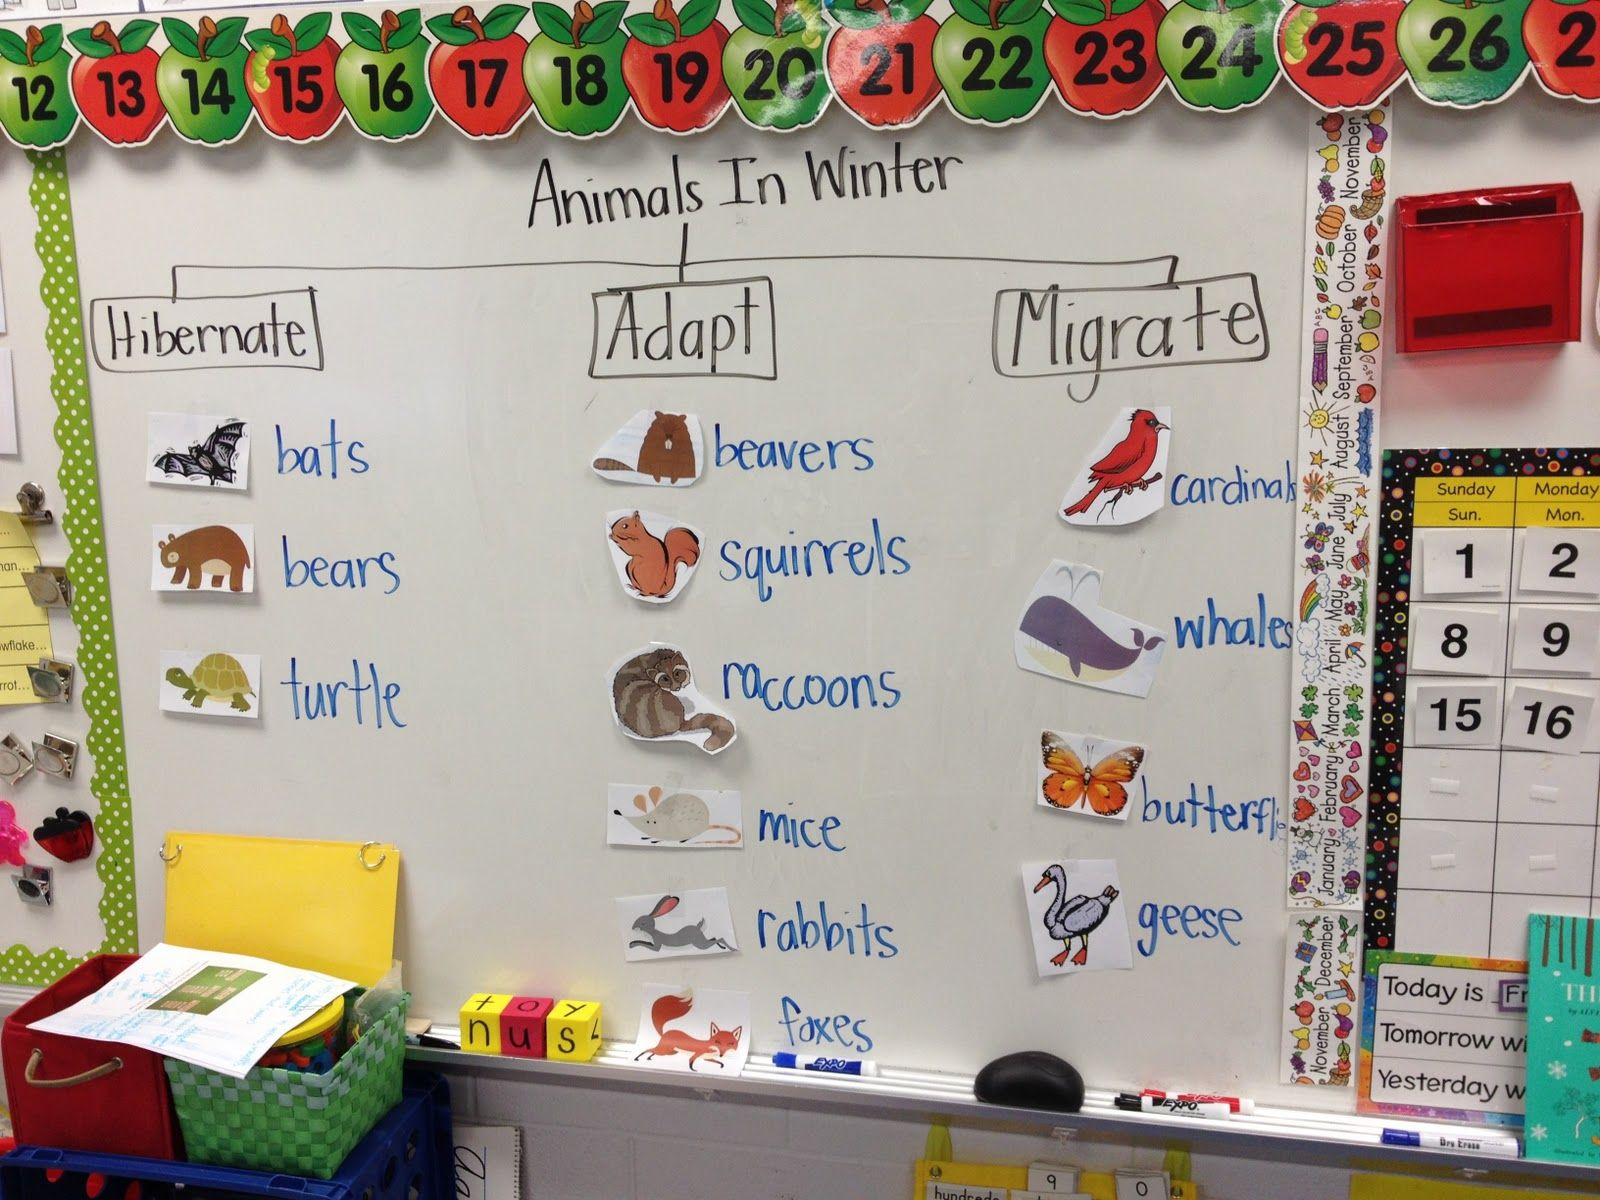 Ms Crowleys Class What Do Animals In Winter